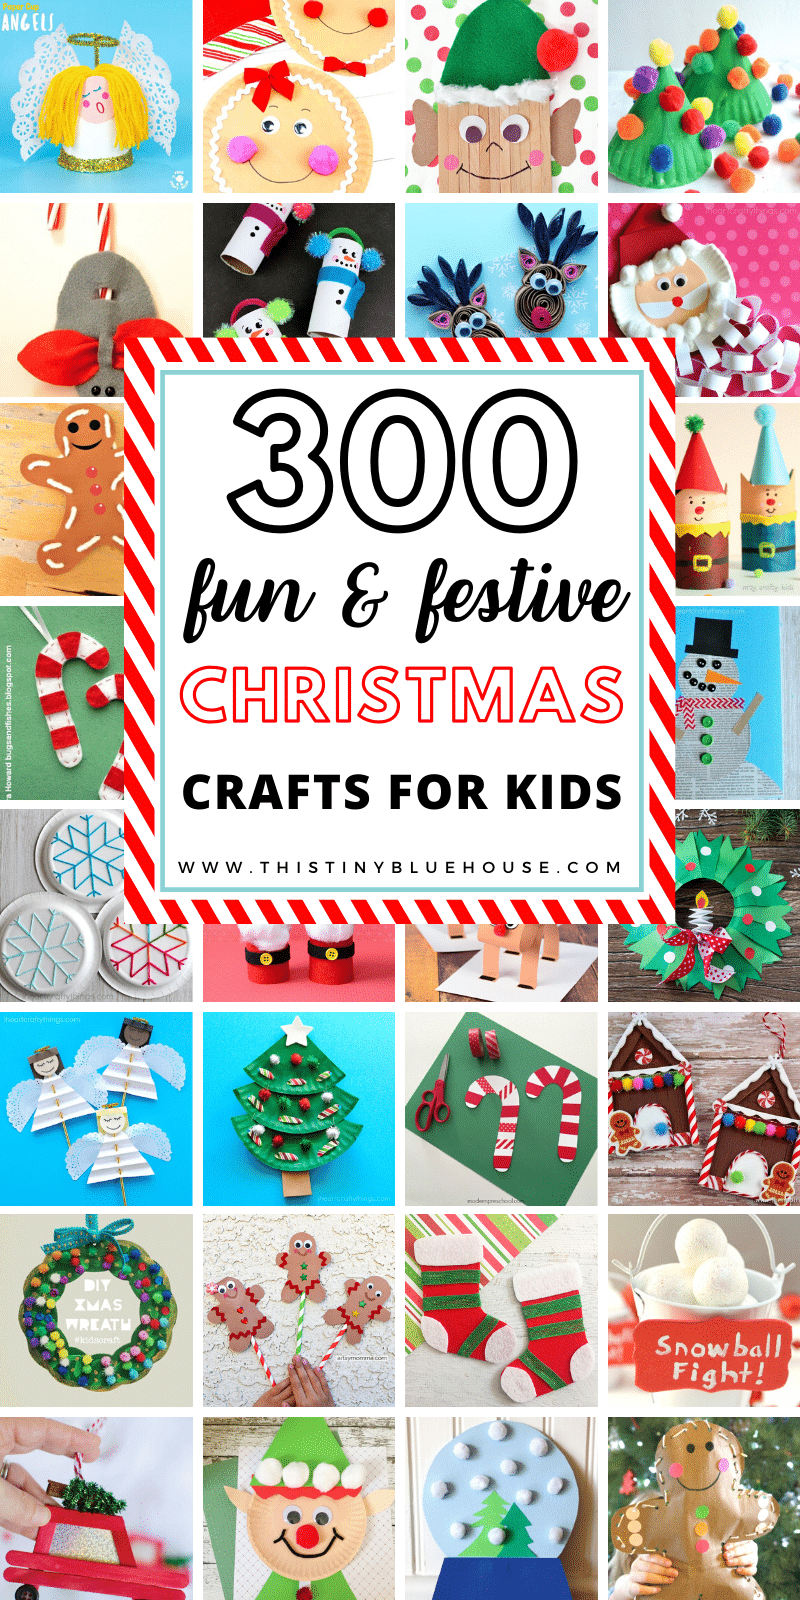 Here is the ultimate BEST collection of fun festive Christmas Crafts for kids. This massive collection of over 300 fun holiday crafts for kids includes everything from Santa crafts to candy cane crafts and much much more. #ChristmasCrafts #ChristmasCraftsForKids #EasyChristmasCraftsForKids #ChristmasCraftsforToddlers #ChristmasCraftsForPreschoolers #ChristmasCraftForKidsDIY